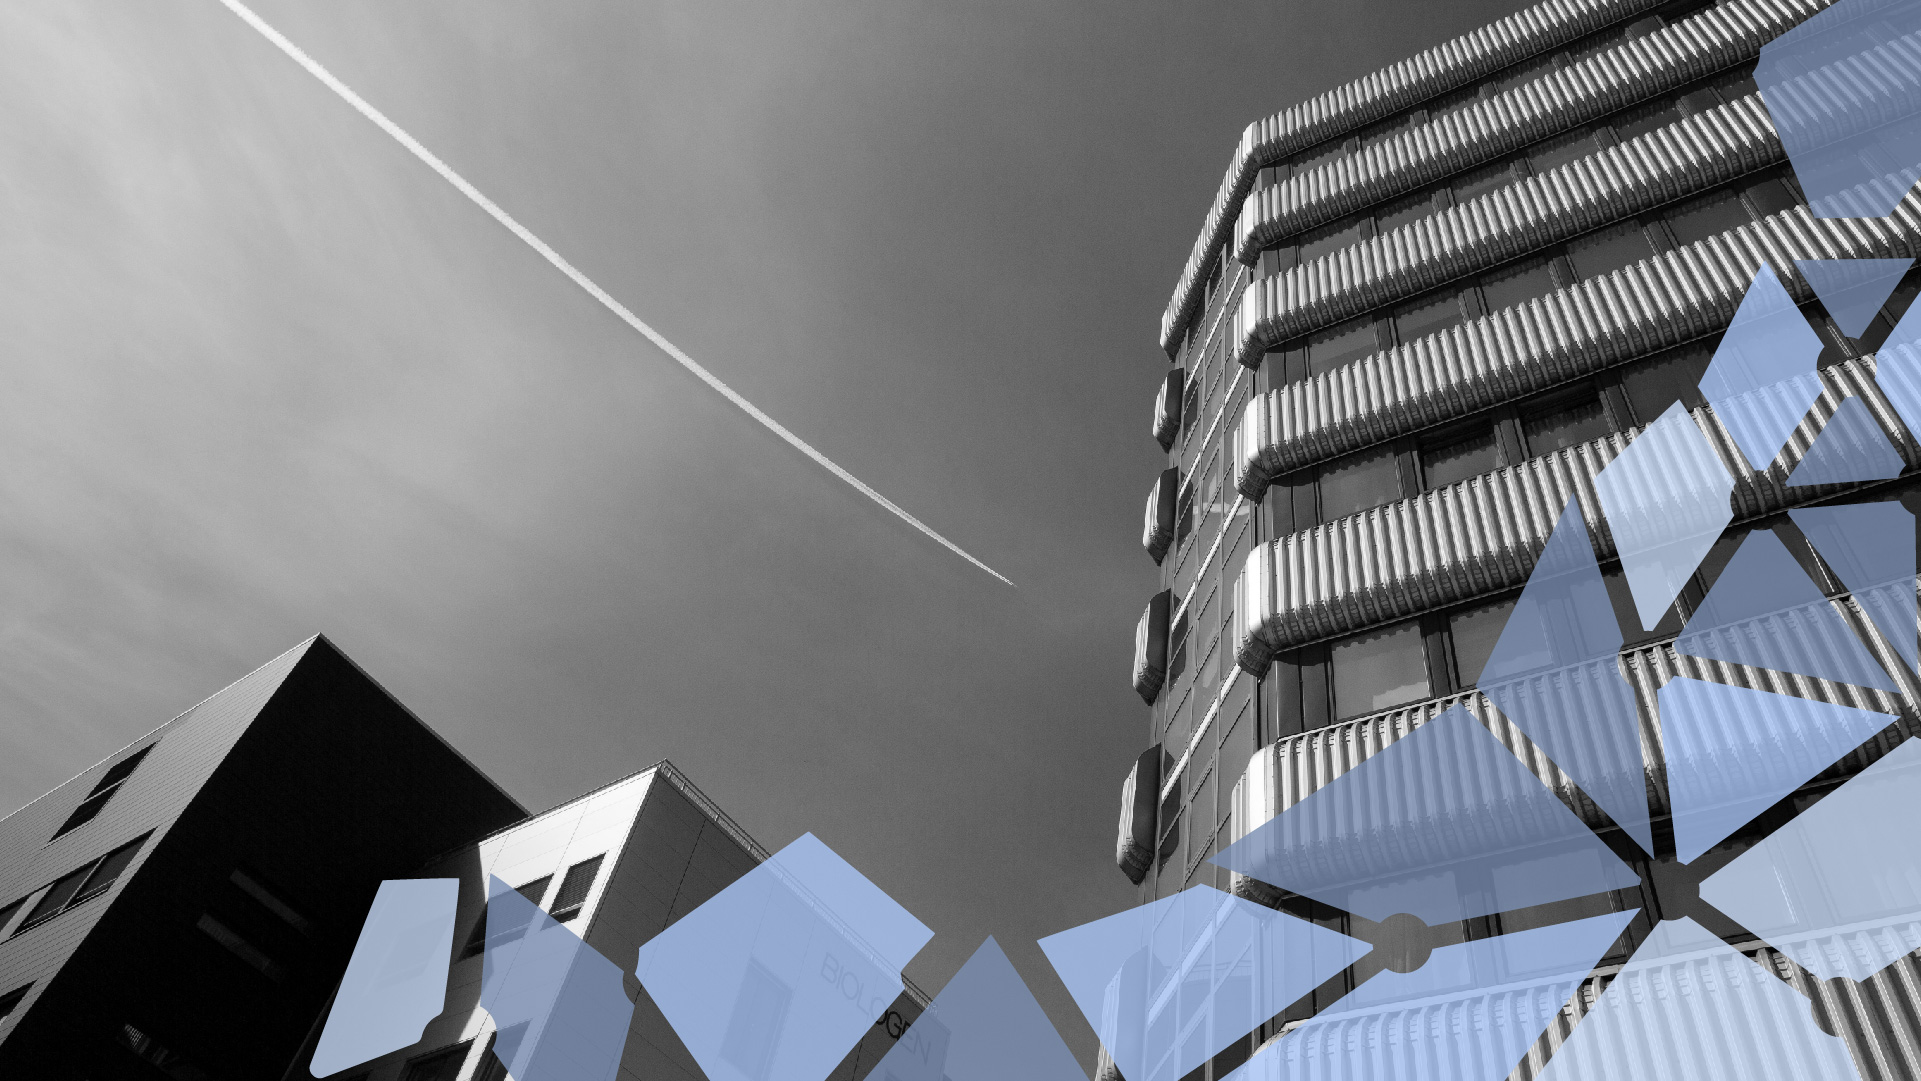 HiB building and sky